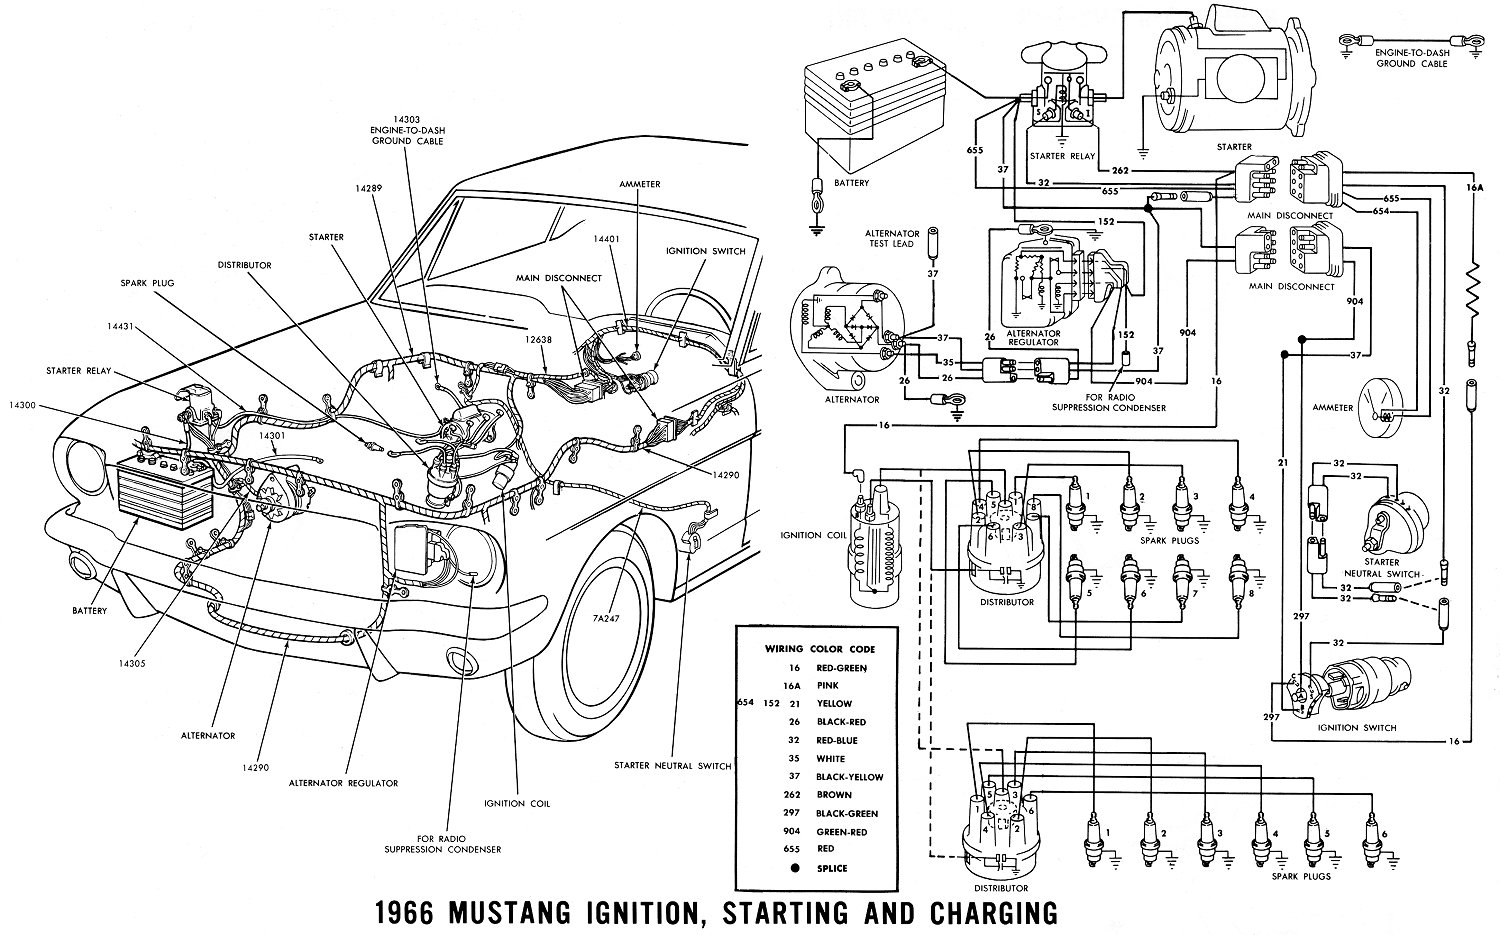 66 ford ignition system wiring diagram pdf with 108079 Wiring Question on 66 Mustang 2 Speed Wiper Wiring Diagram besides Installing 20Gauges together with 1966 Mustang Wiring Diagram Pdf as well Vanagon Radio Wiring Diagram Besides Vw Turn Signal besides 108079 Wiring Question.